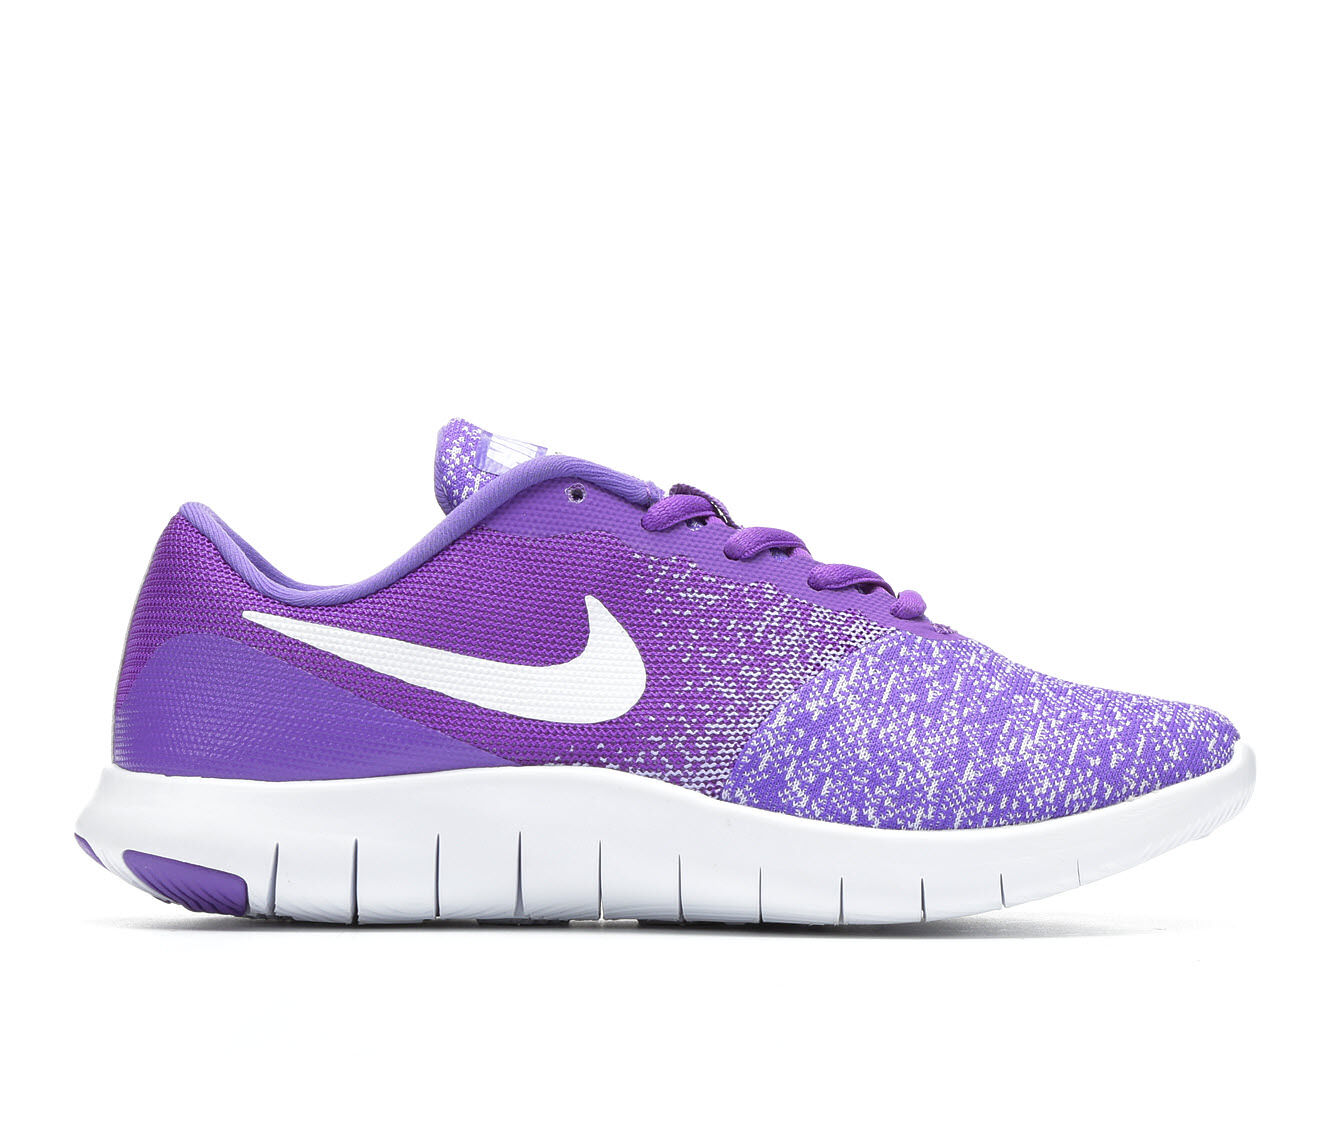 nike shoes images for girls 847672